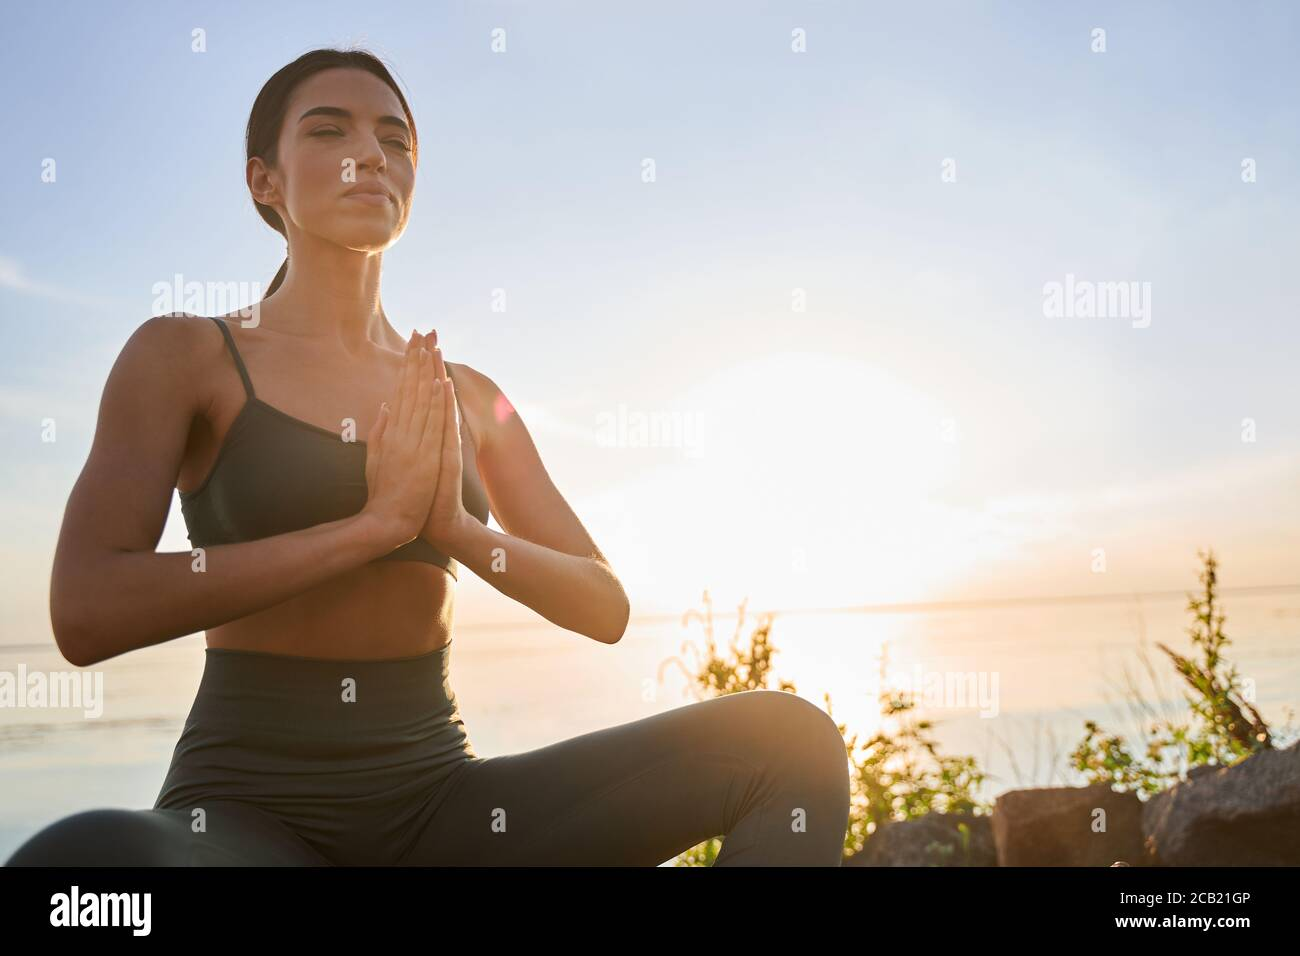 Charming young woman meditating on sunny day Stock Photo